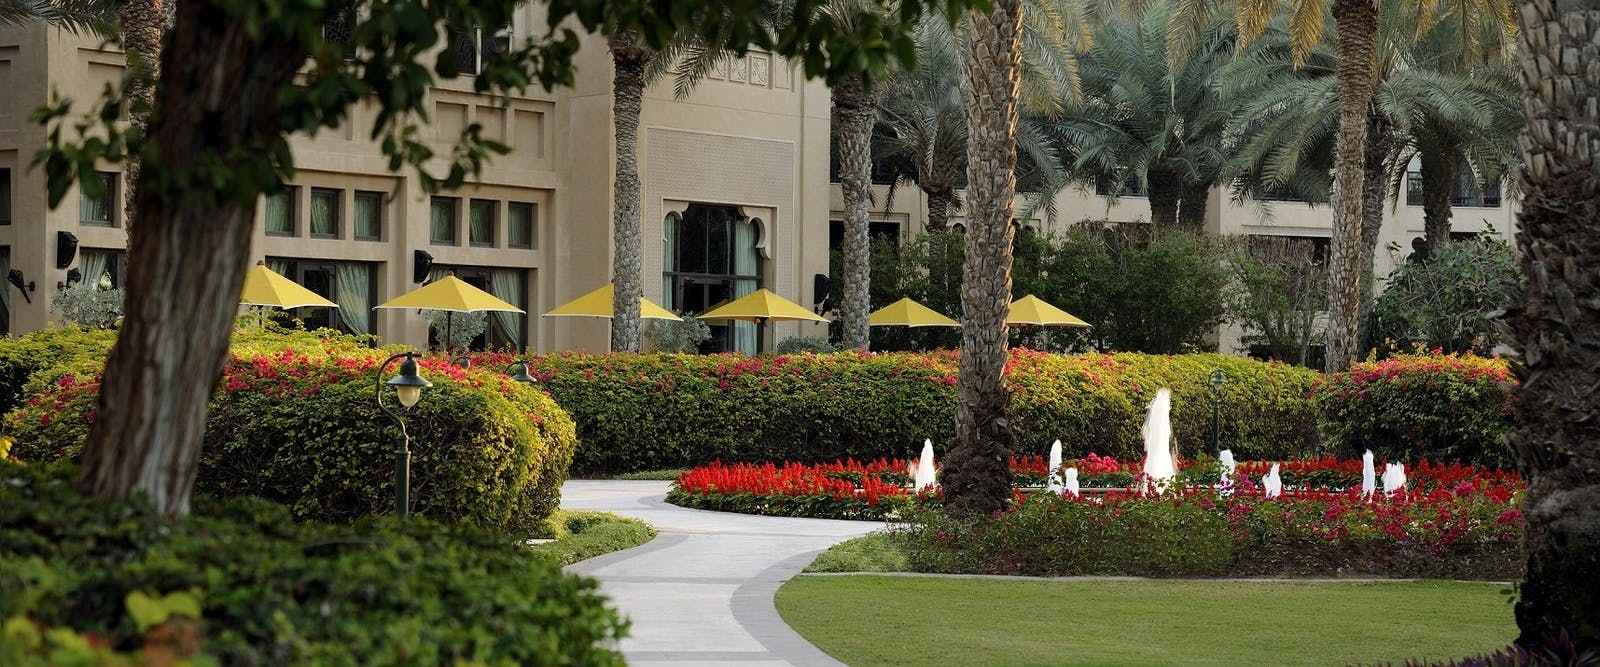 The Garden Landscape at One&Only Royal Mirage - The Residence & Spa, Dubai